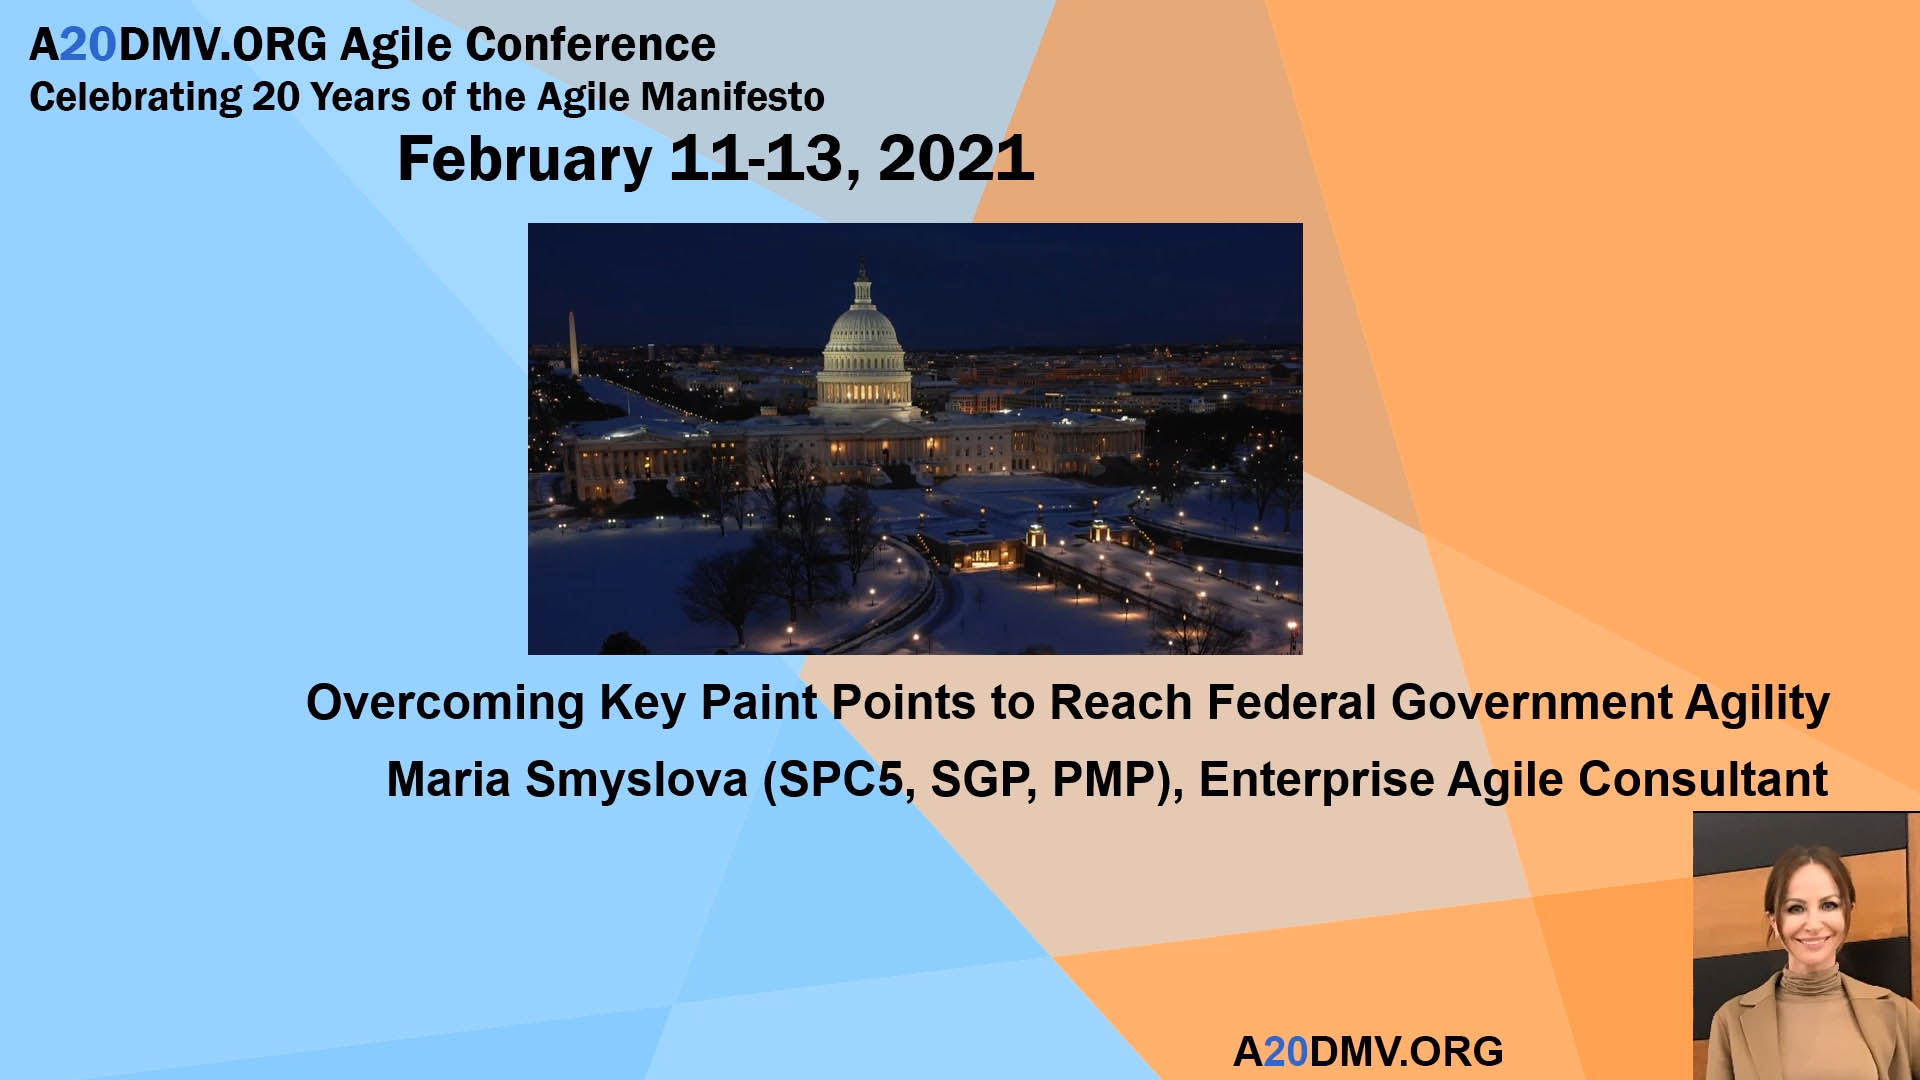 Reaching Government Agility - Maria Smyslova